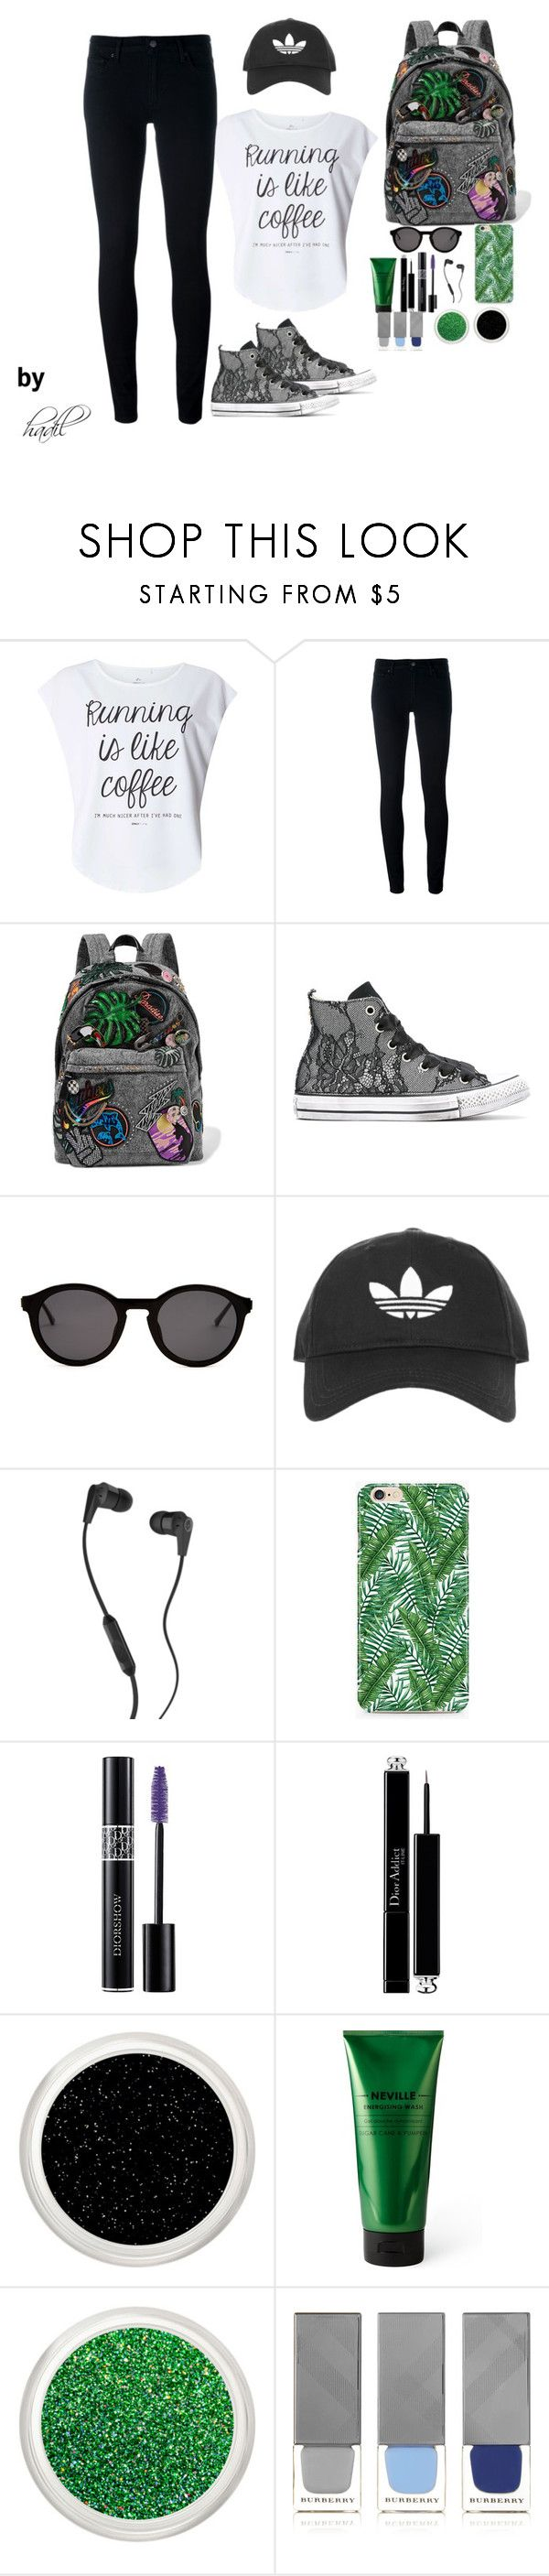 """everyone deserve to wear so well"" by xoxohadil on Polyvore featuring mode, Dorothy Perkins, Levi's, Marc Jacobs, Converse, Thierry Lasry, Topshop, Skullcandy, Christian Dior et Neville"